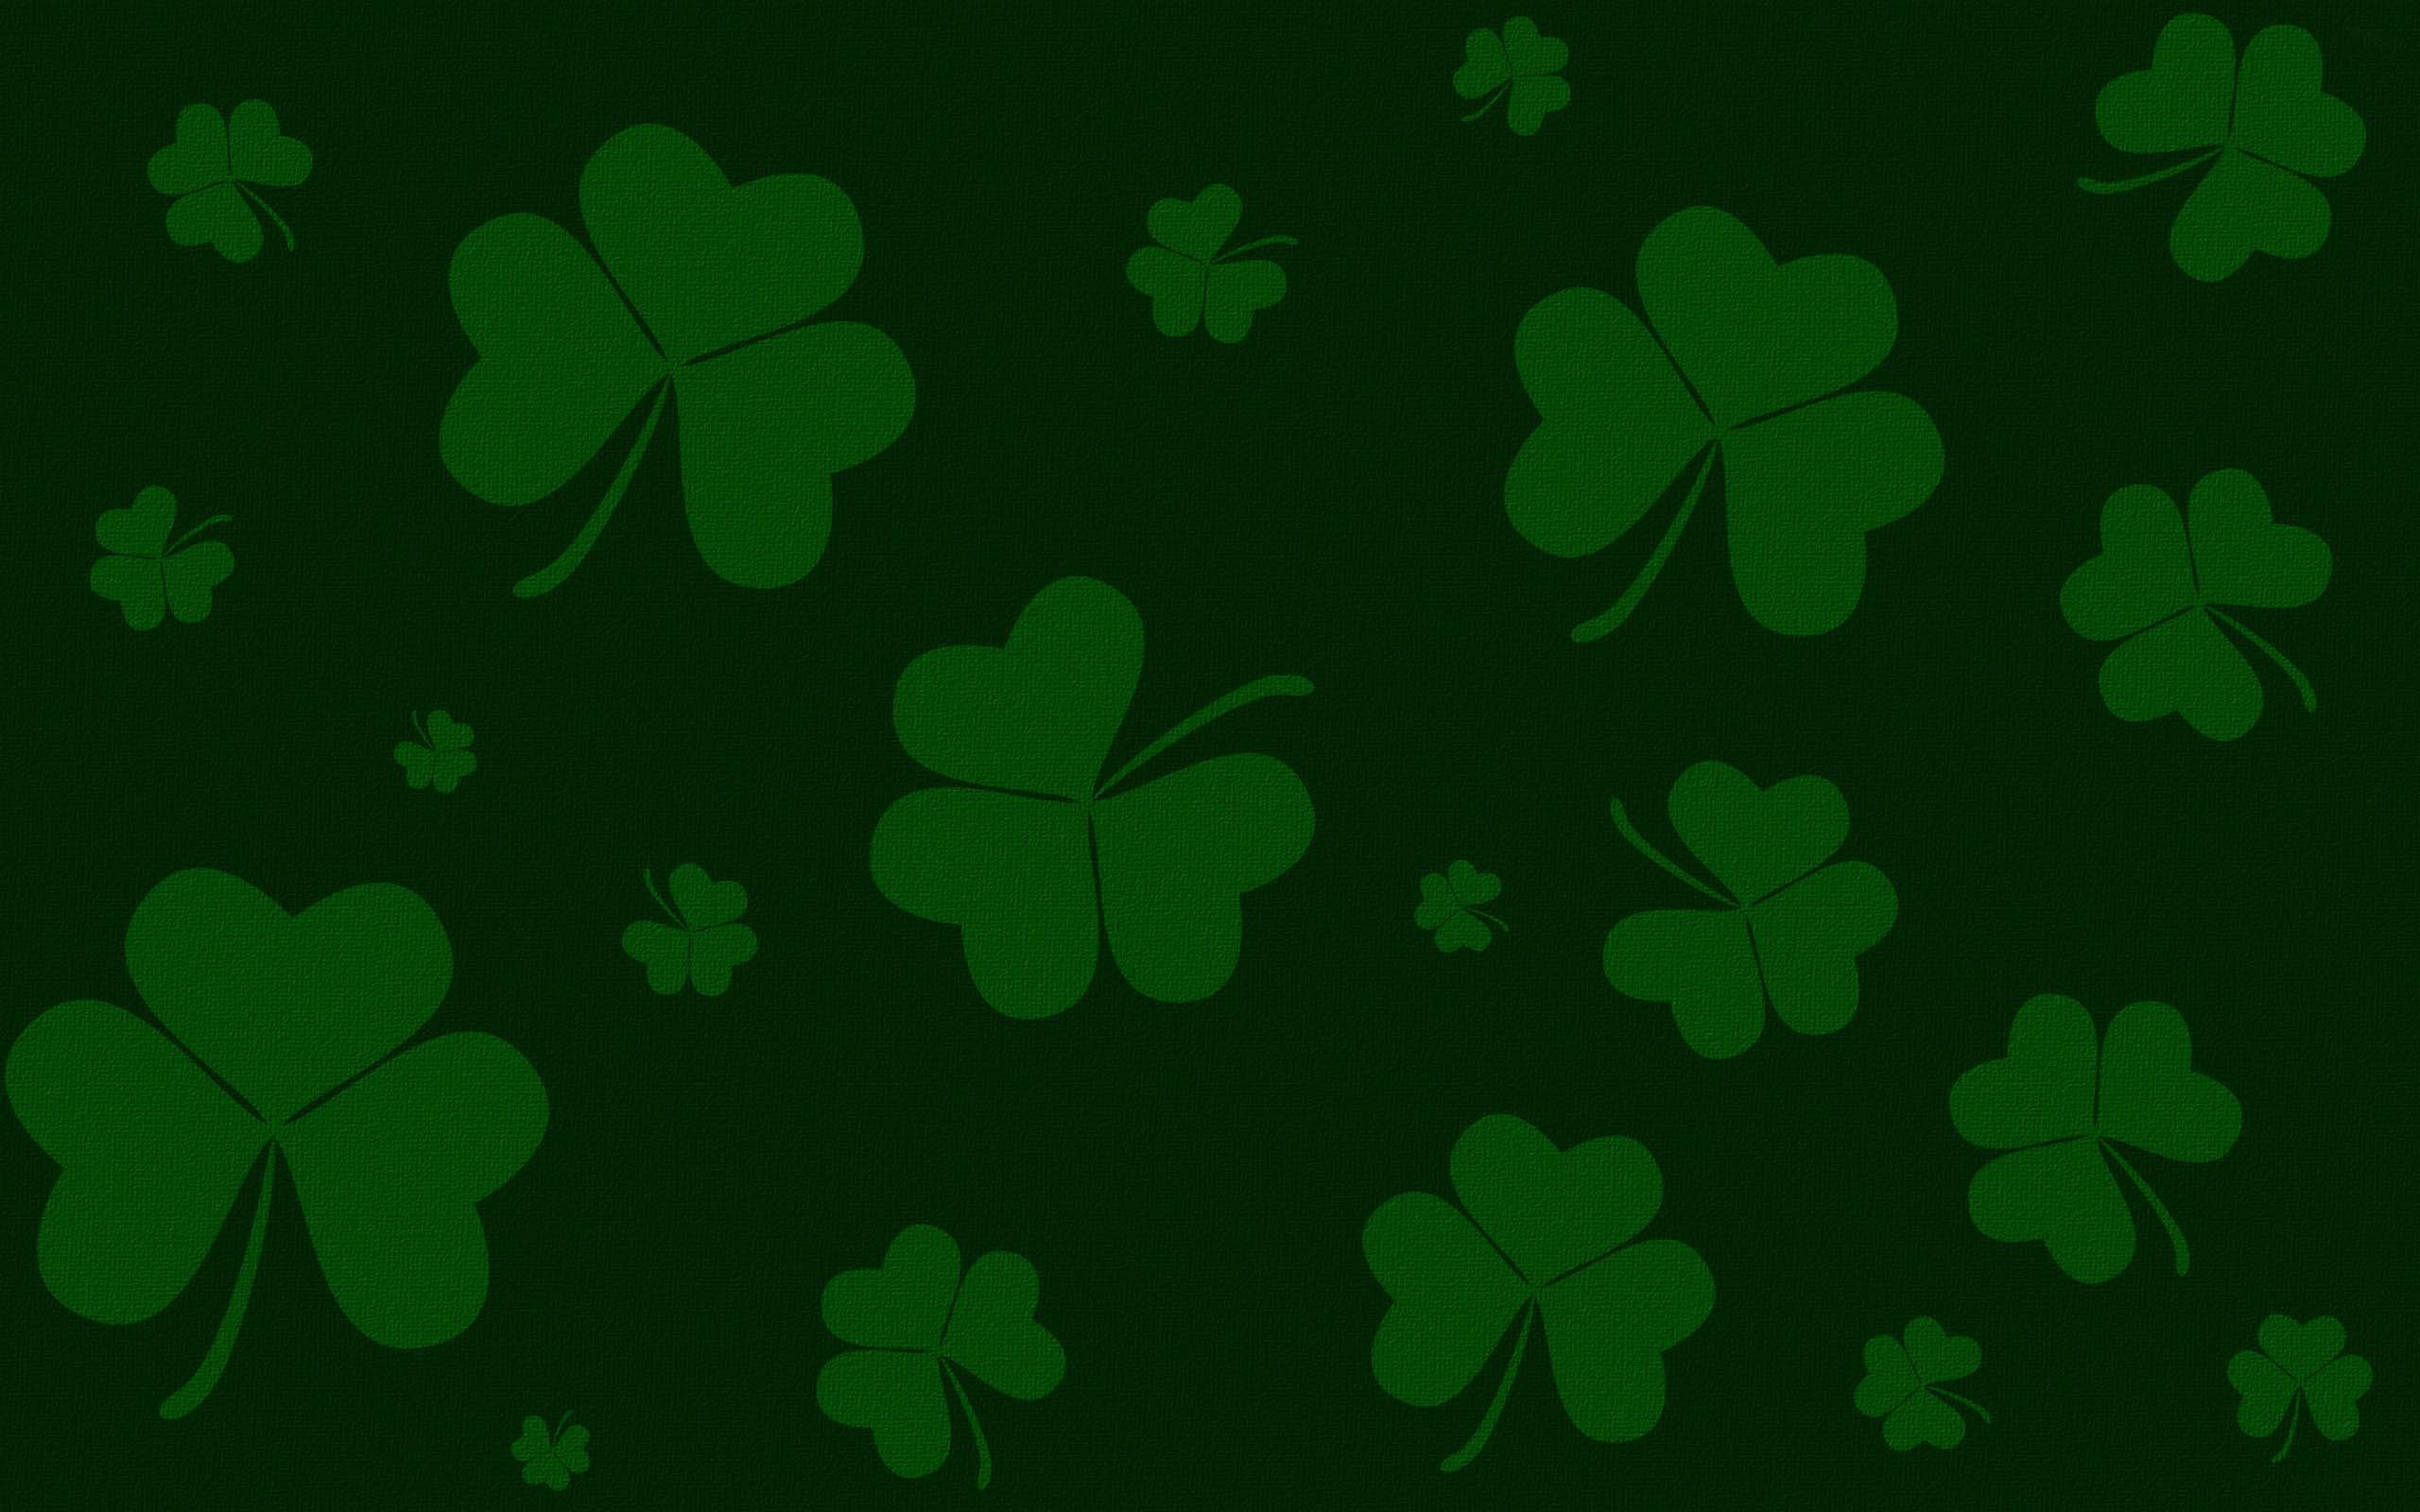 St Patrick Background Images: Happy St Patrick's Day PC Background Wallpaper 2880x1800